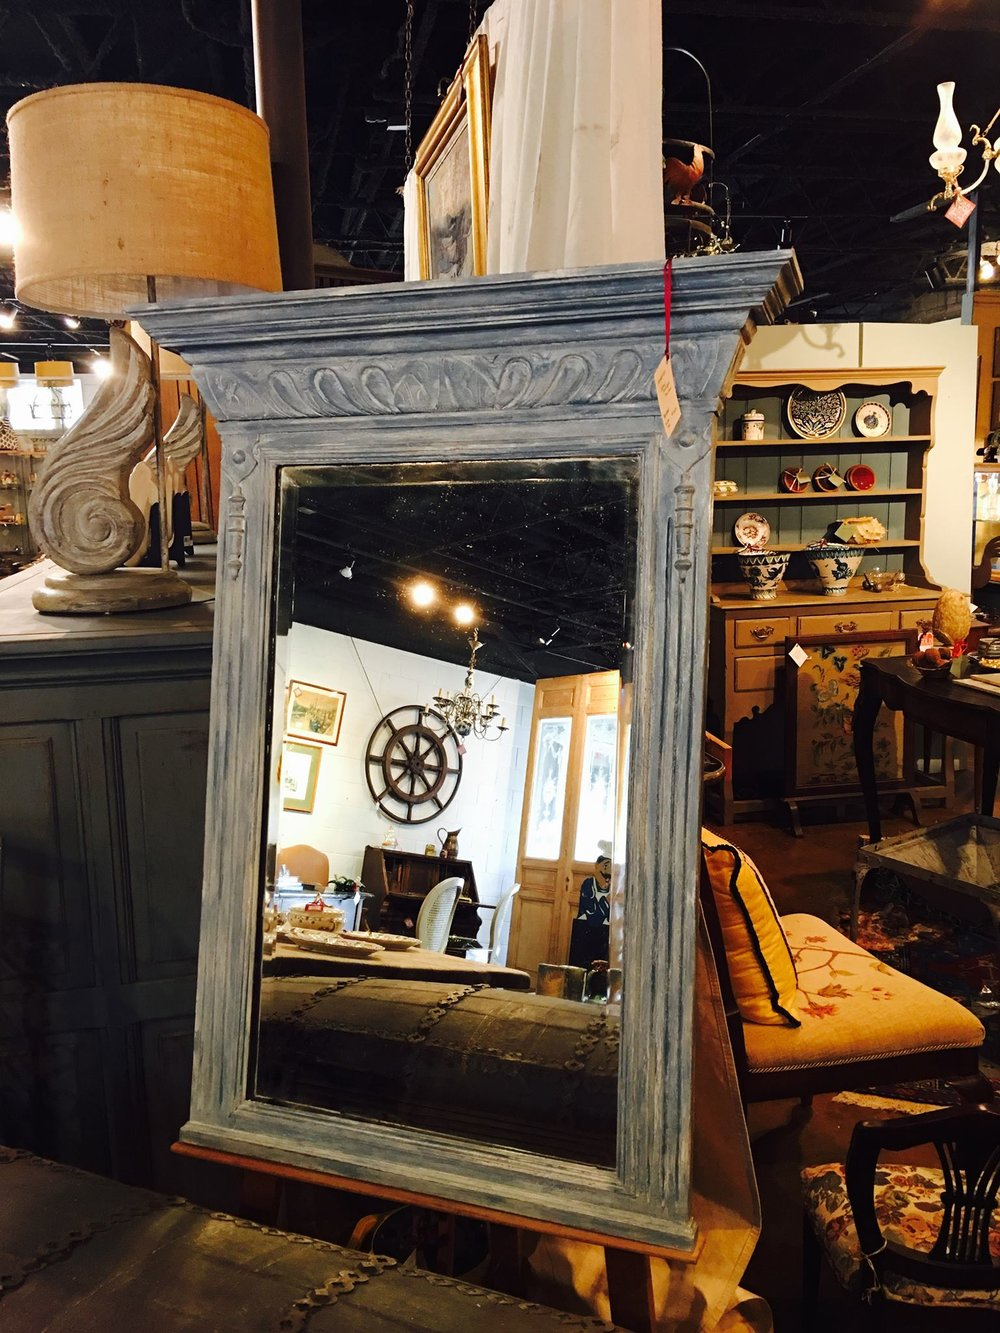 Same mirror, new look!!! Come in and check out this gorgeous Louis Phillipe Mirror, circa 1900, painted with our Maison Blanche chalk paint! Plus, we just received a new shipment of paint and new products!!! 2195 Calder Ave, Beaumont Tx, 77701, 409.835.3080.  #burnsantikhaus   #chalkpaint   #shopsmall   #vintage   #europeanimporters